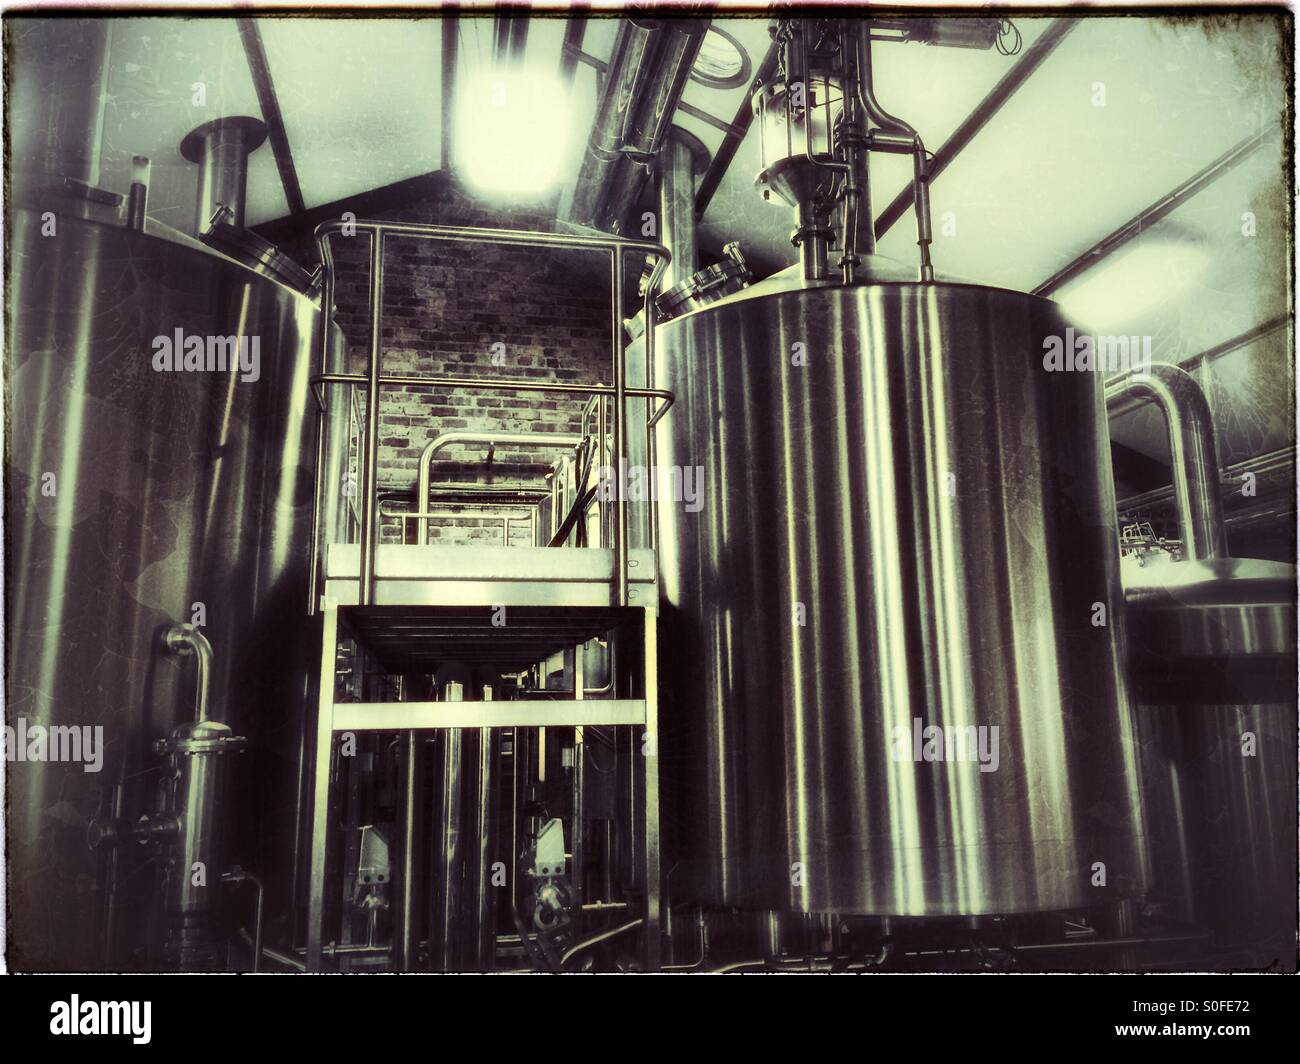 Tanks at Cape Brewing Company, Spice Route, Paarl, South Africa. - Stock Image